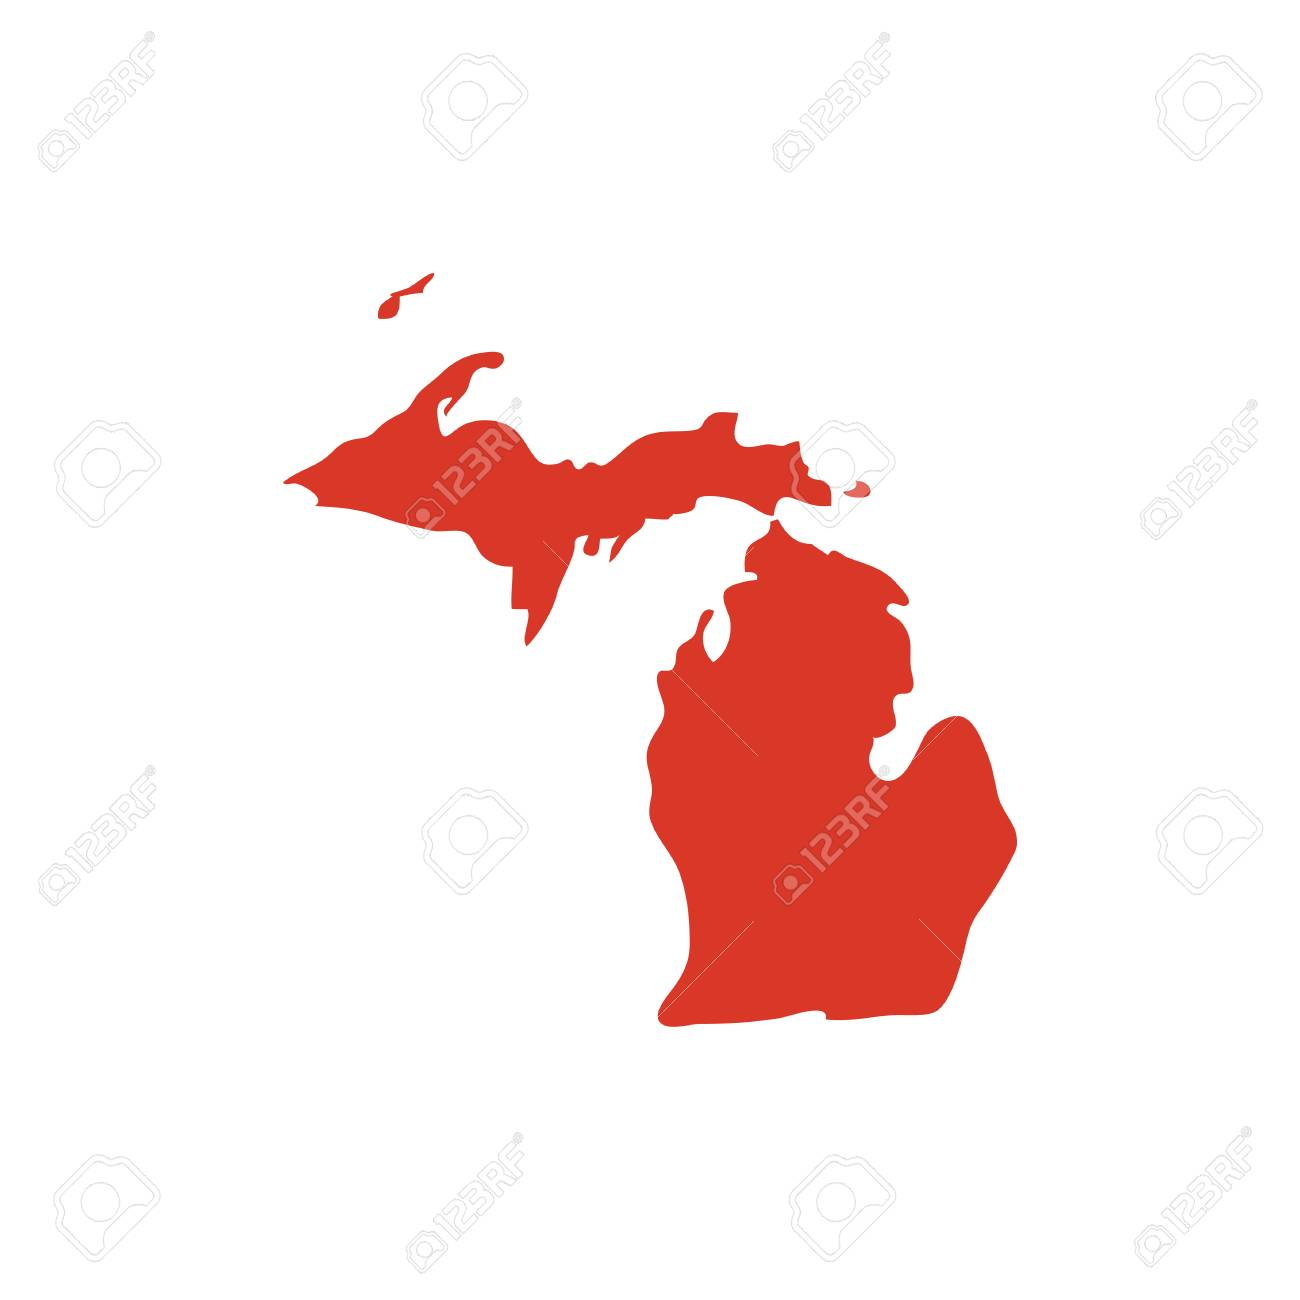 State of Michigan vector red map silhouette. MI state shape icon...